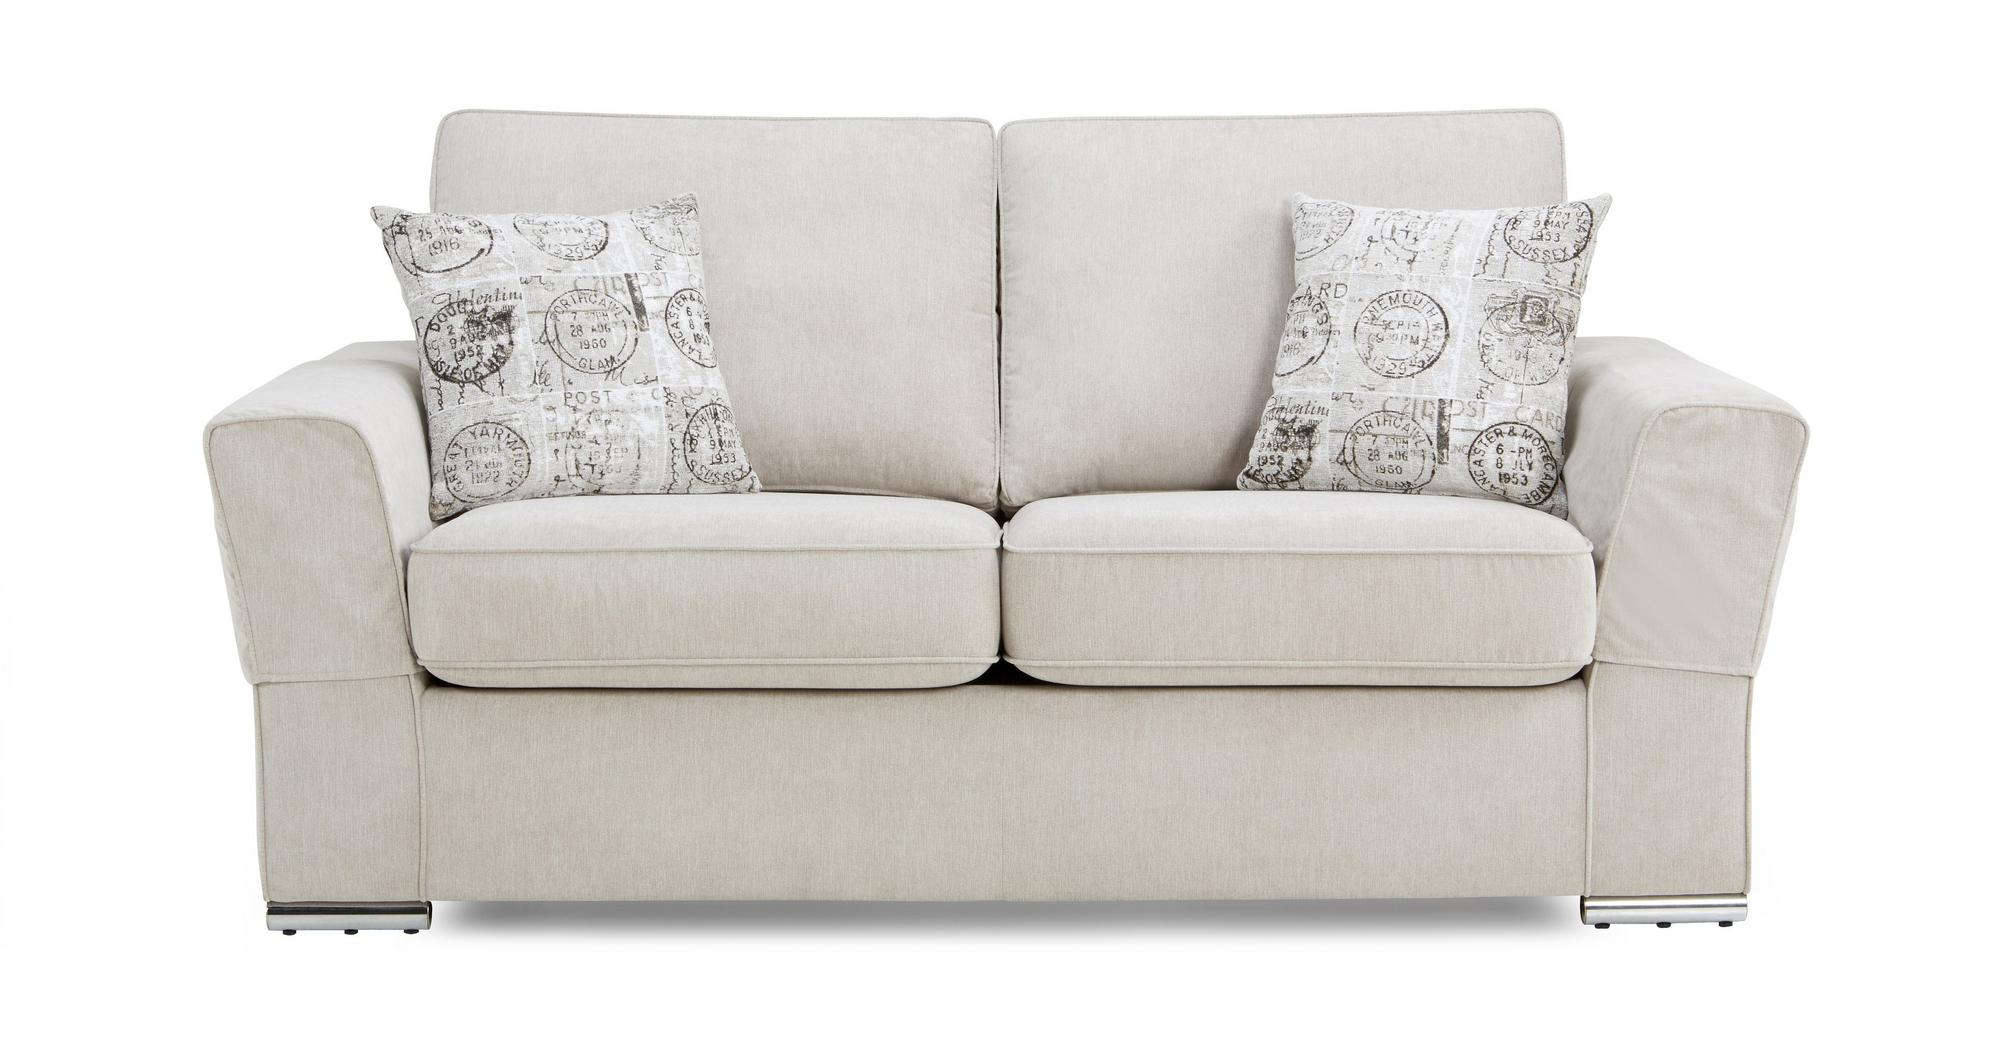 Dfs Vettel Silver Fabric 2 Seater Sofa Bed 2 Scatters Ebay